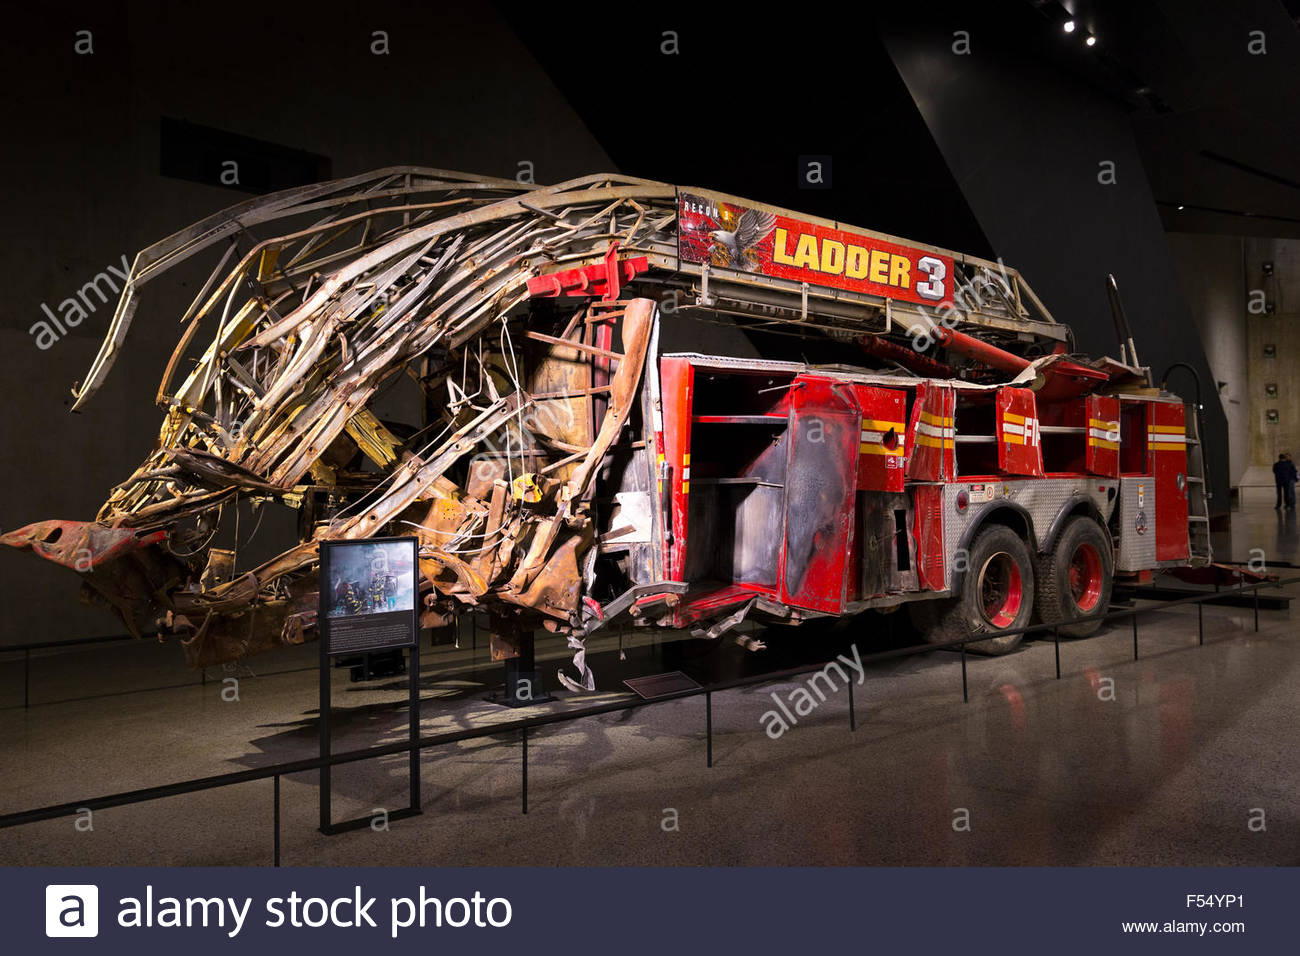 New York Stock Exchange (NYSE) New York City, New York City Fire Department Ladder Company 3 exhibit at 9/11 ...